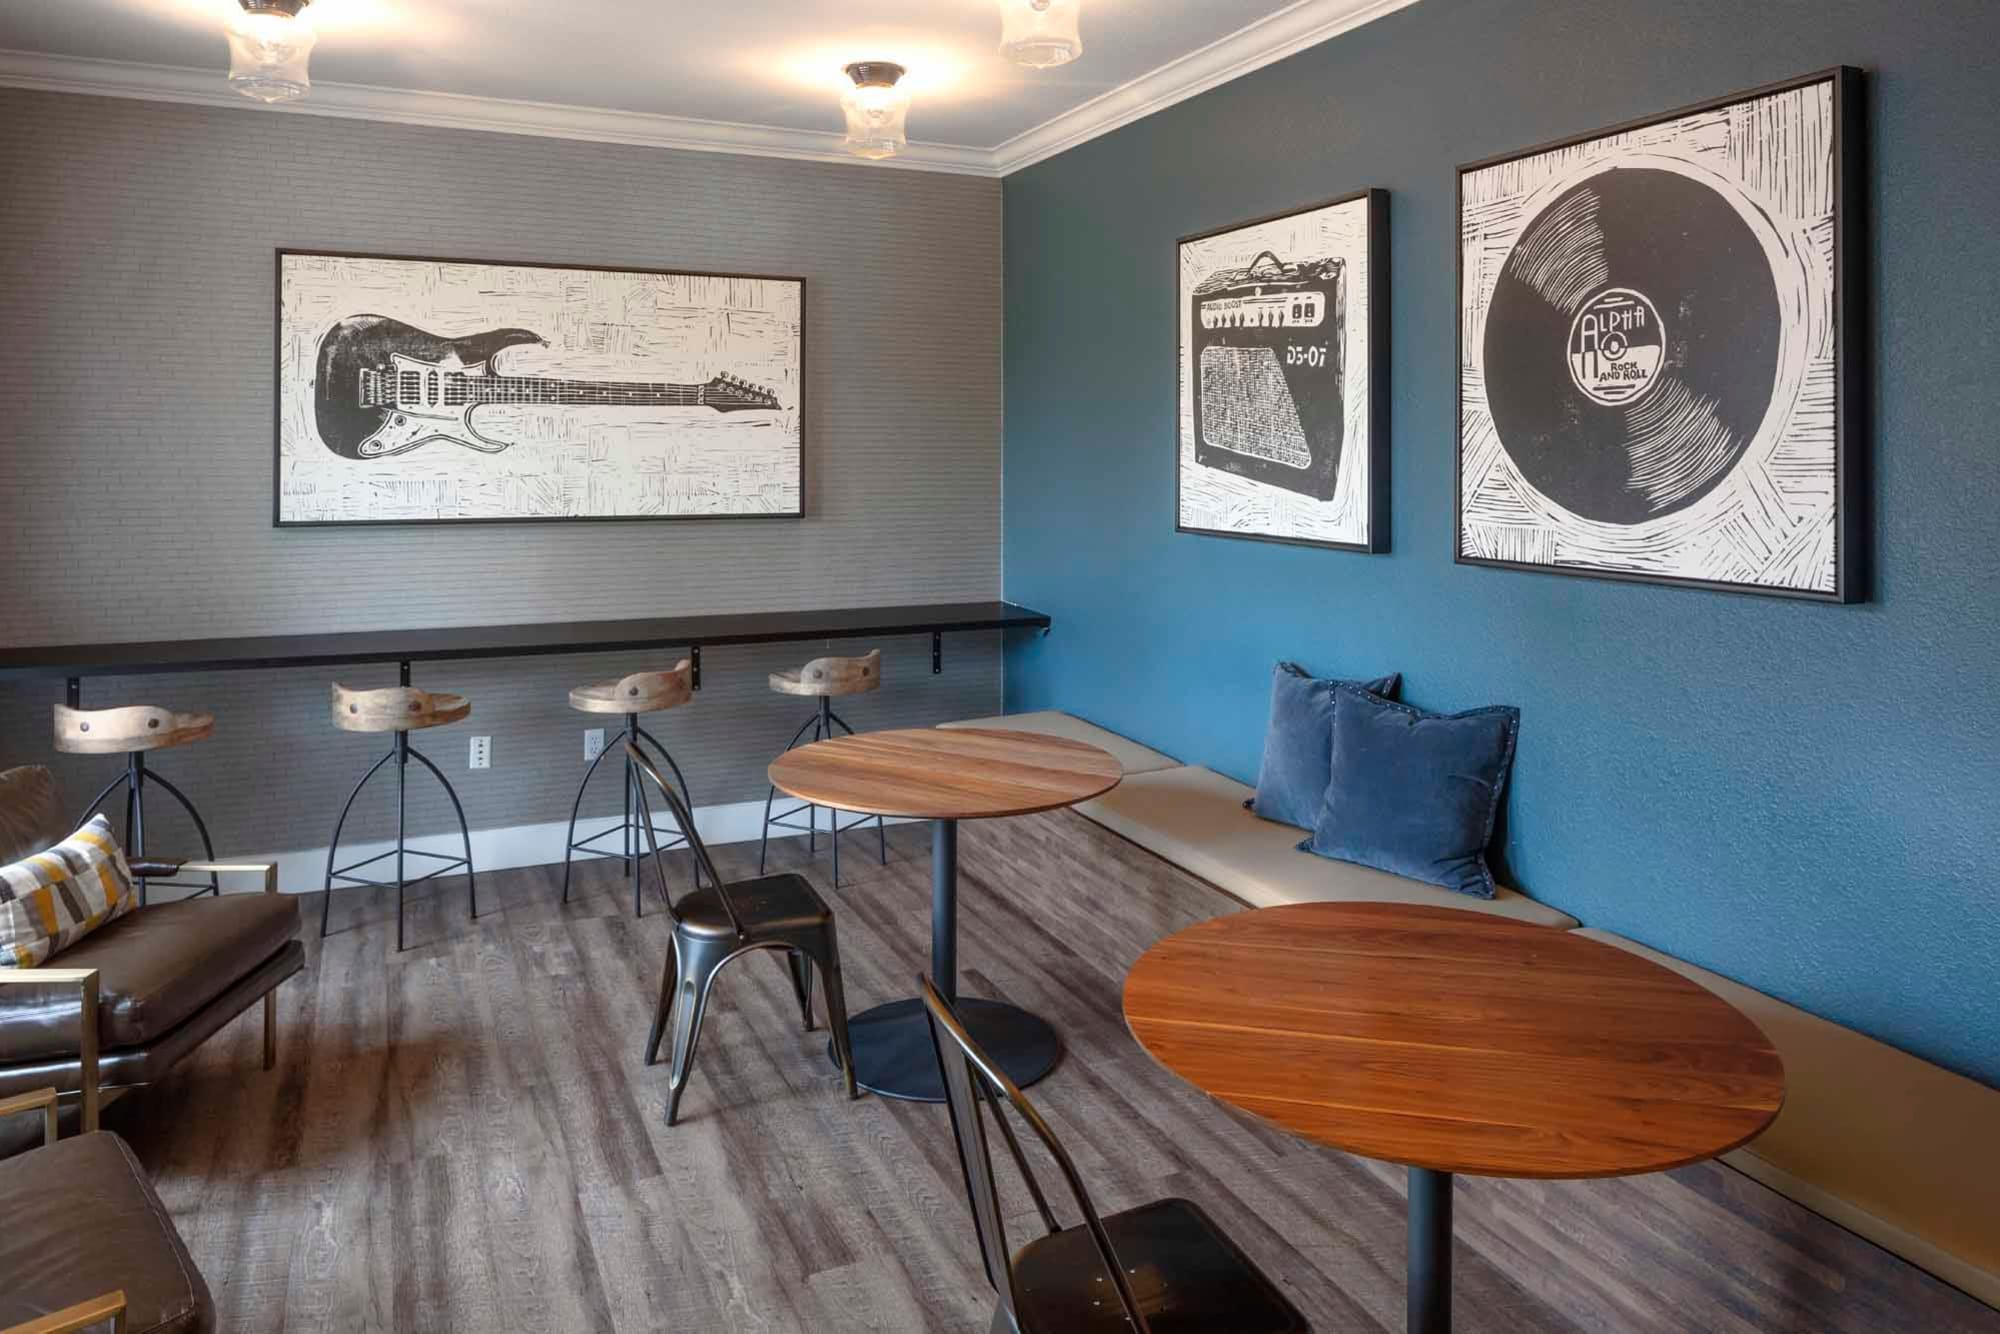 A common area with coffee tables and decorated with framed albums at The Grove at Orenco Station in Hillsboro, Oregon